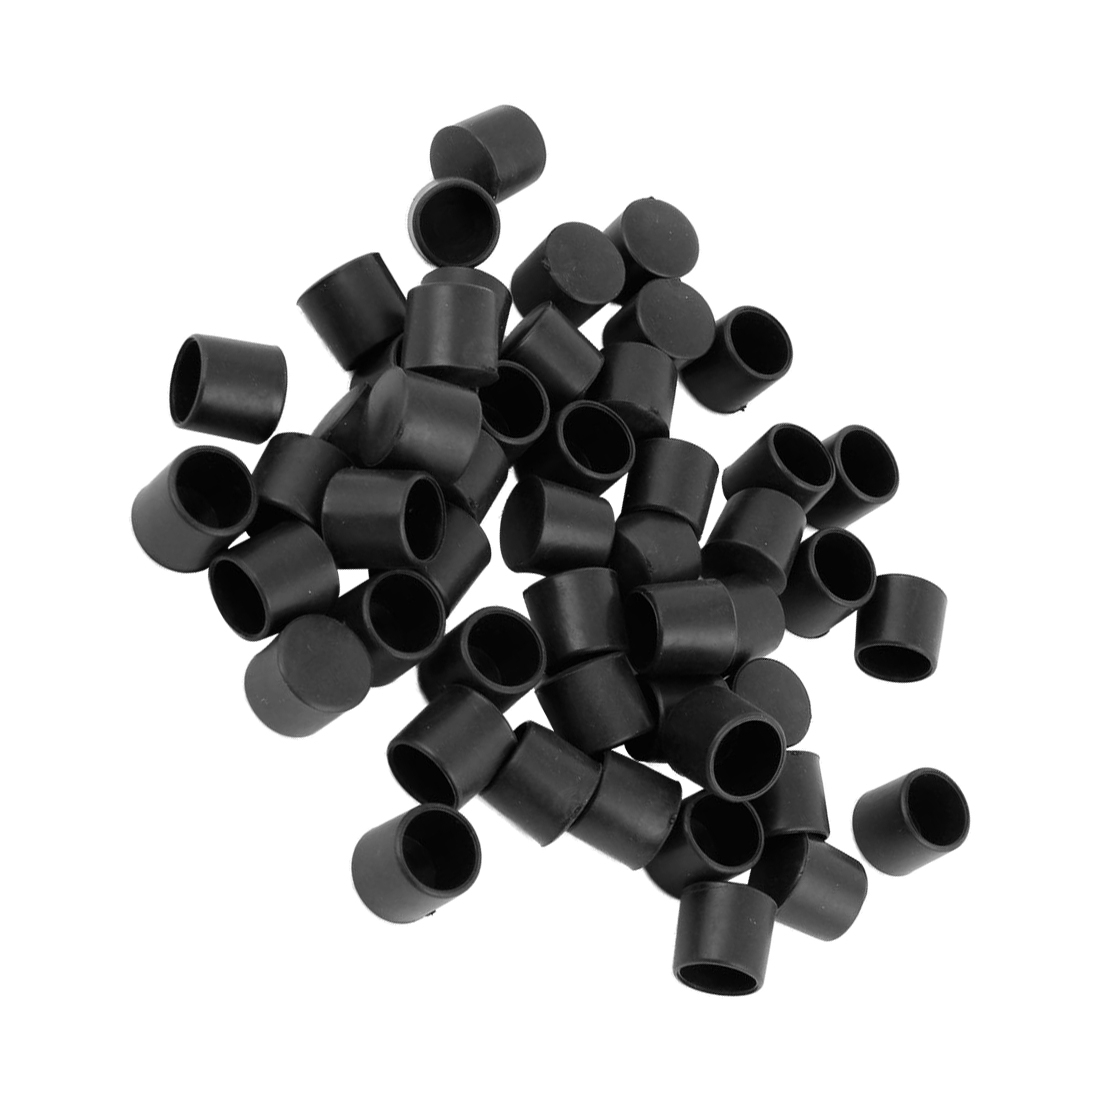 Hot Sale 50 Pcs Black Rubber PVC Flexible Round End Cap Round 12mm Foot Cover